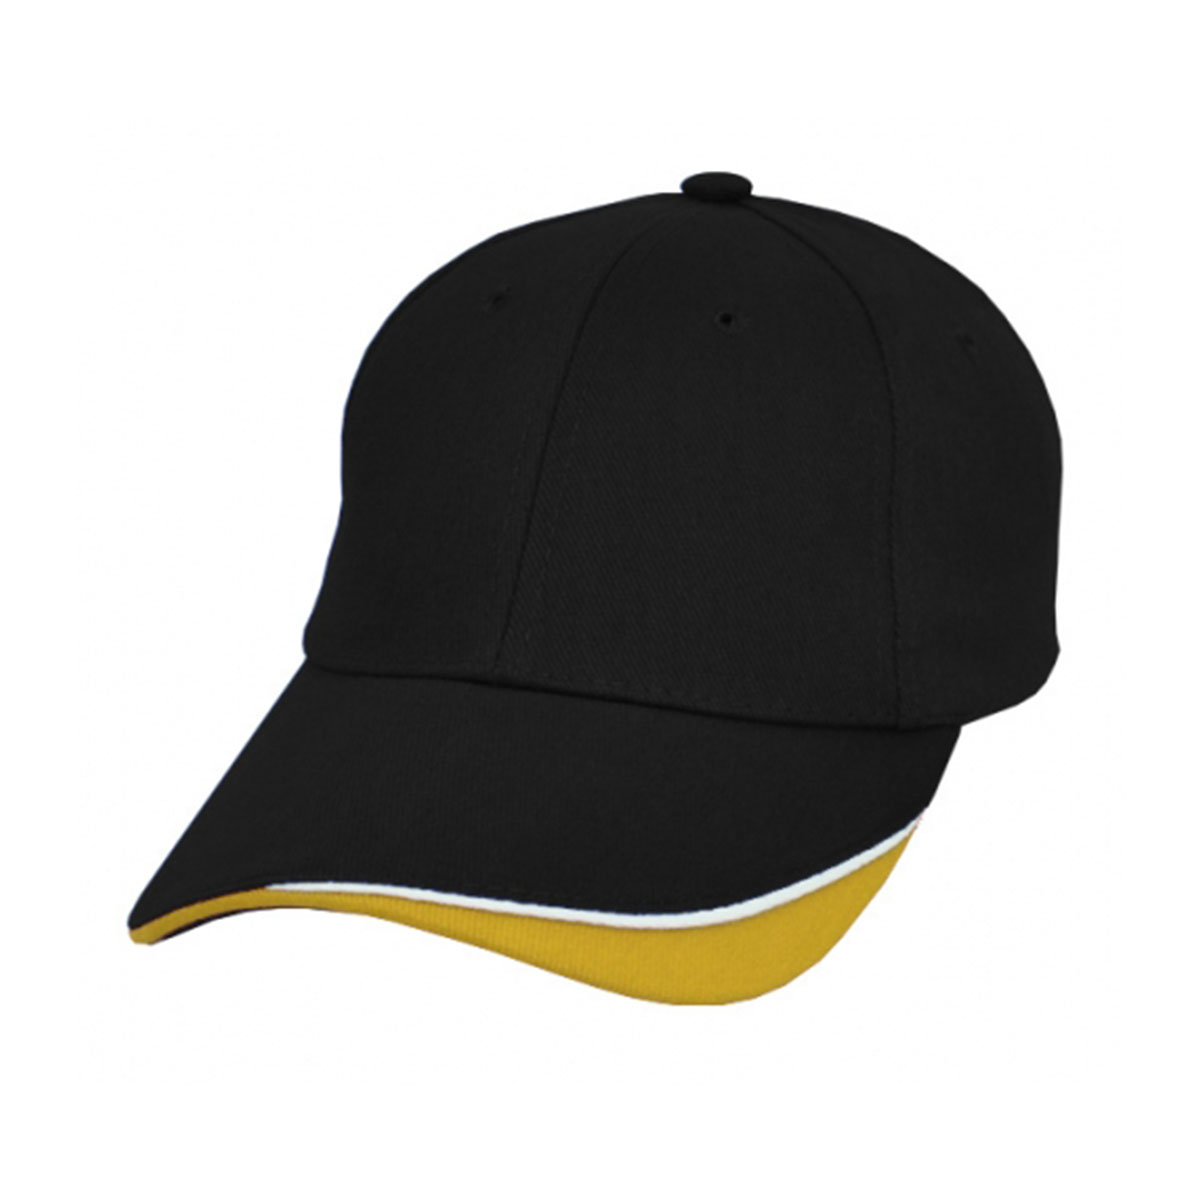 Razor Cap-Black / White / Gold